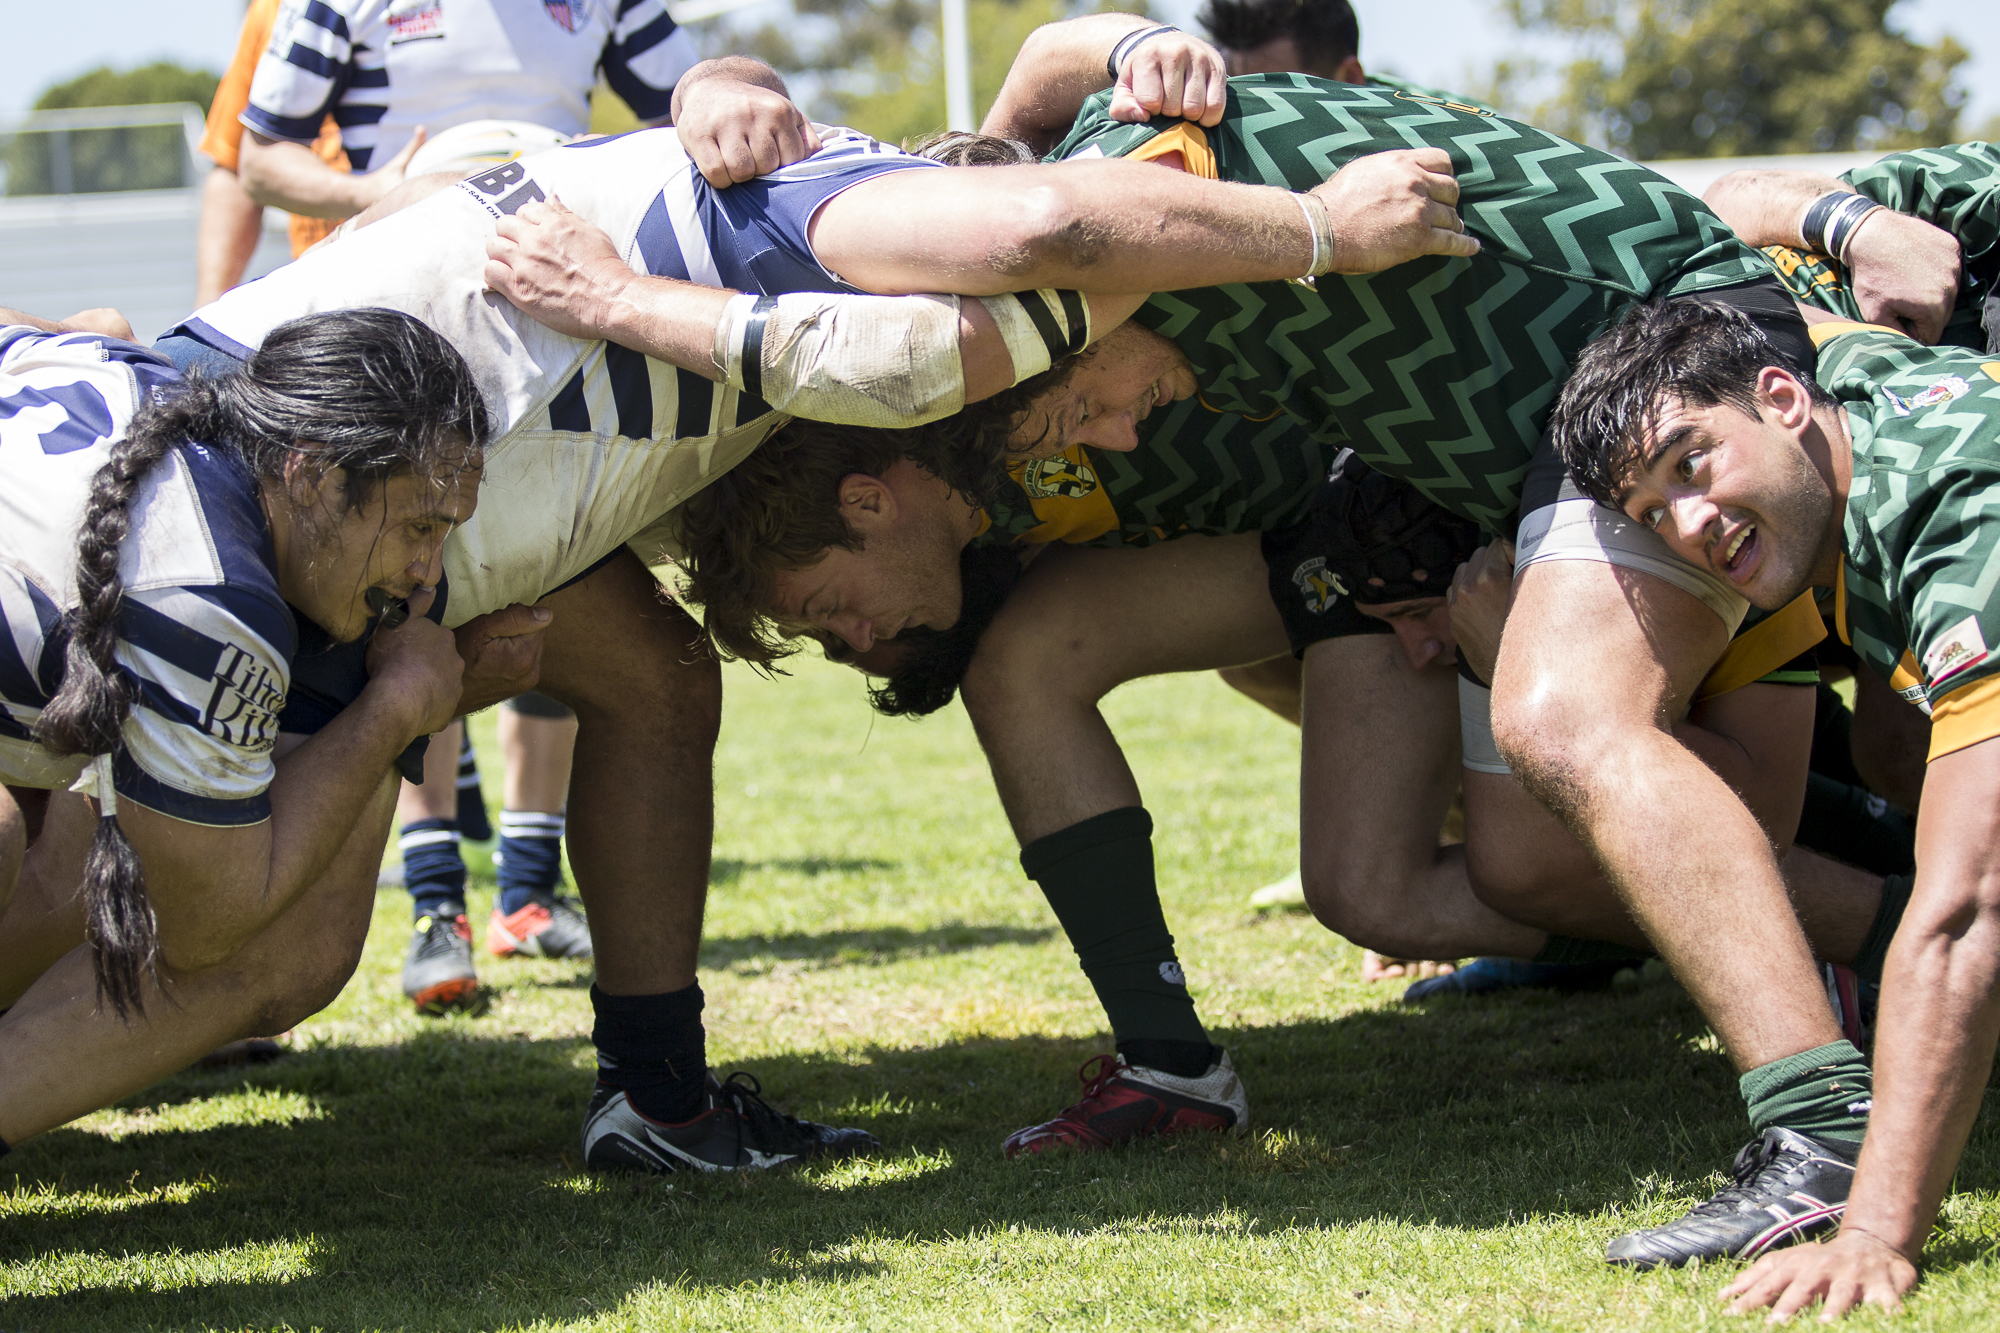 The Santa Monica Dolphins and Old Mission Beach Athletic Club come together for a scrum (in favor of Santa Monica) after Mission Beach were deemed off side during the 2nd half of the game, which was held at Westchester High School in Westchester California on Saturday April 28 2018. The Santa Monica Dolphins would go on to lose the game 7-26 during Saturday's game. (Matthew Martin/Corsair Photo)